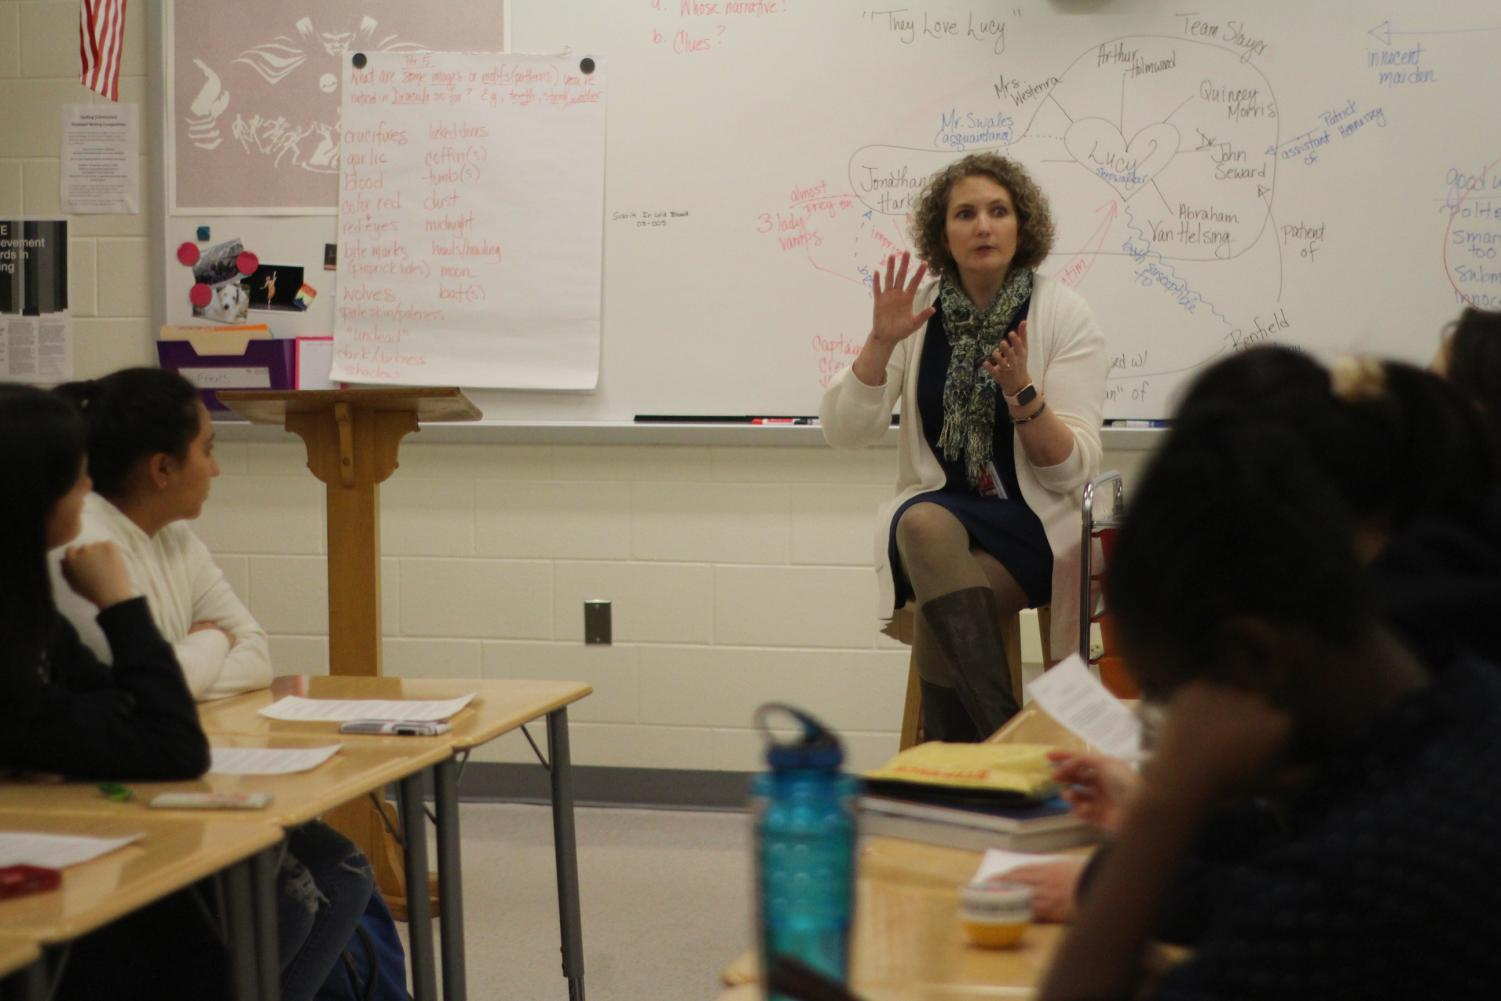 English teacher Dr. Michelle Boswell discusses the NCTE competition with students during the interest session.